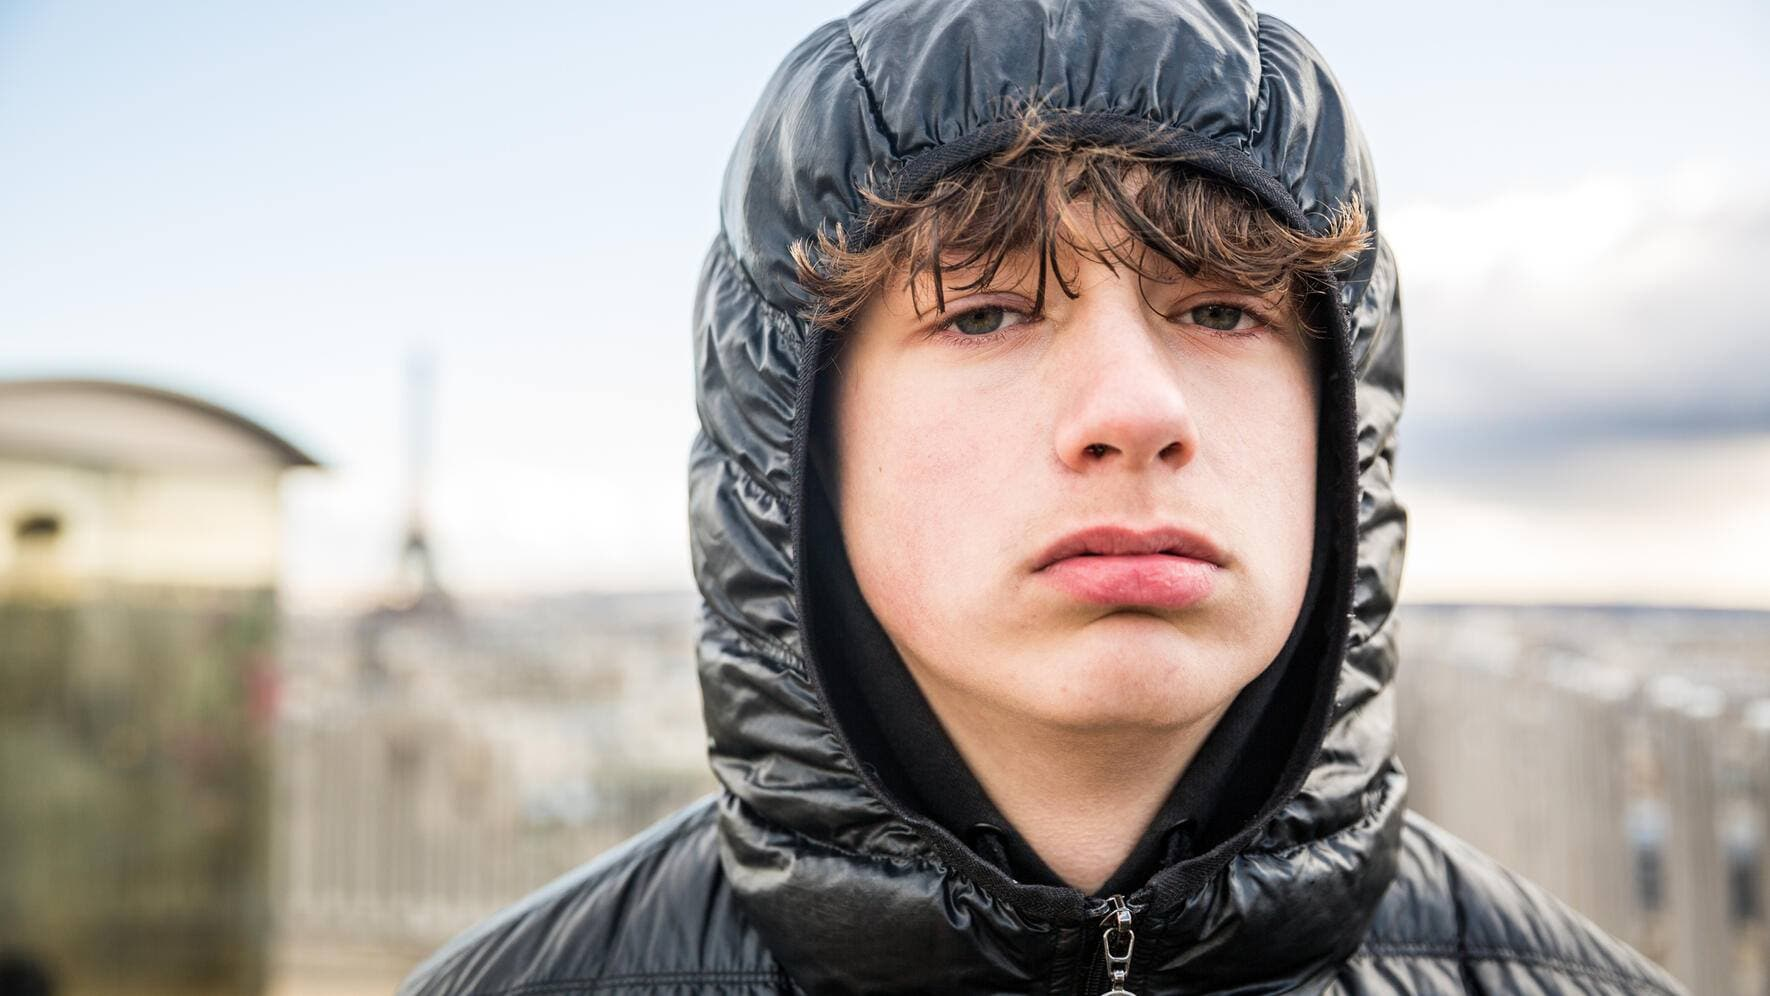 Teenage boy looking at camera wearing a hood with Paris cityscape background